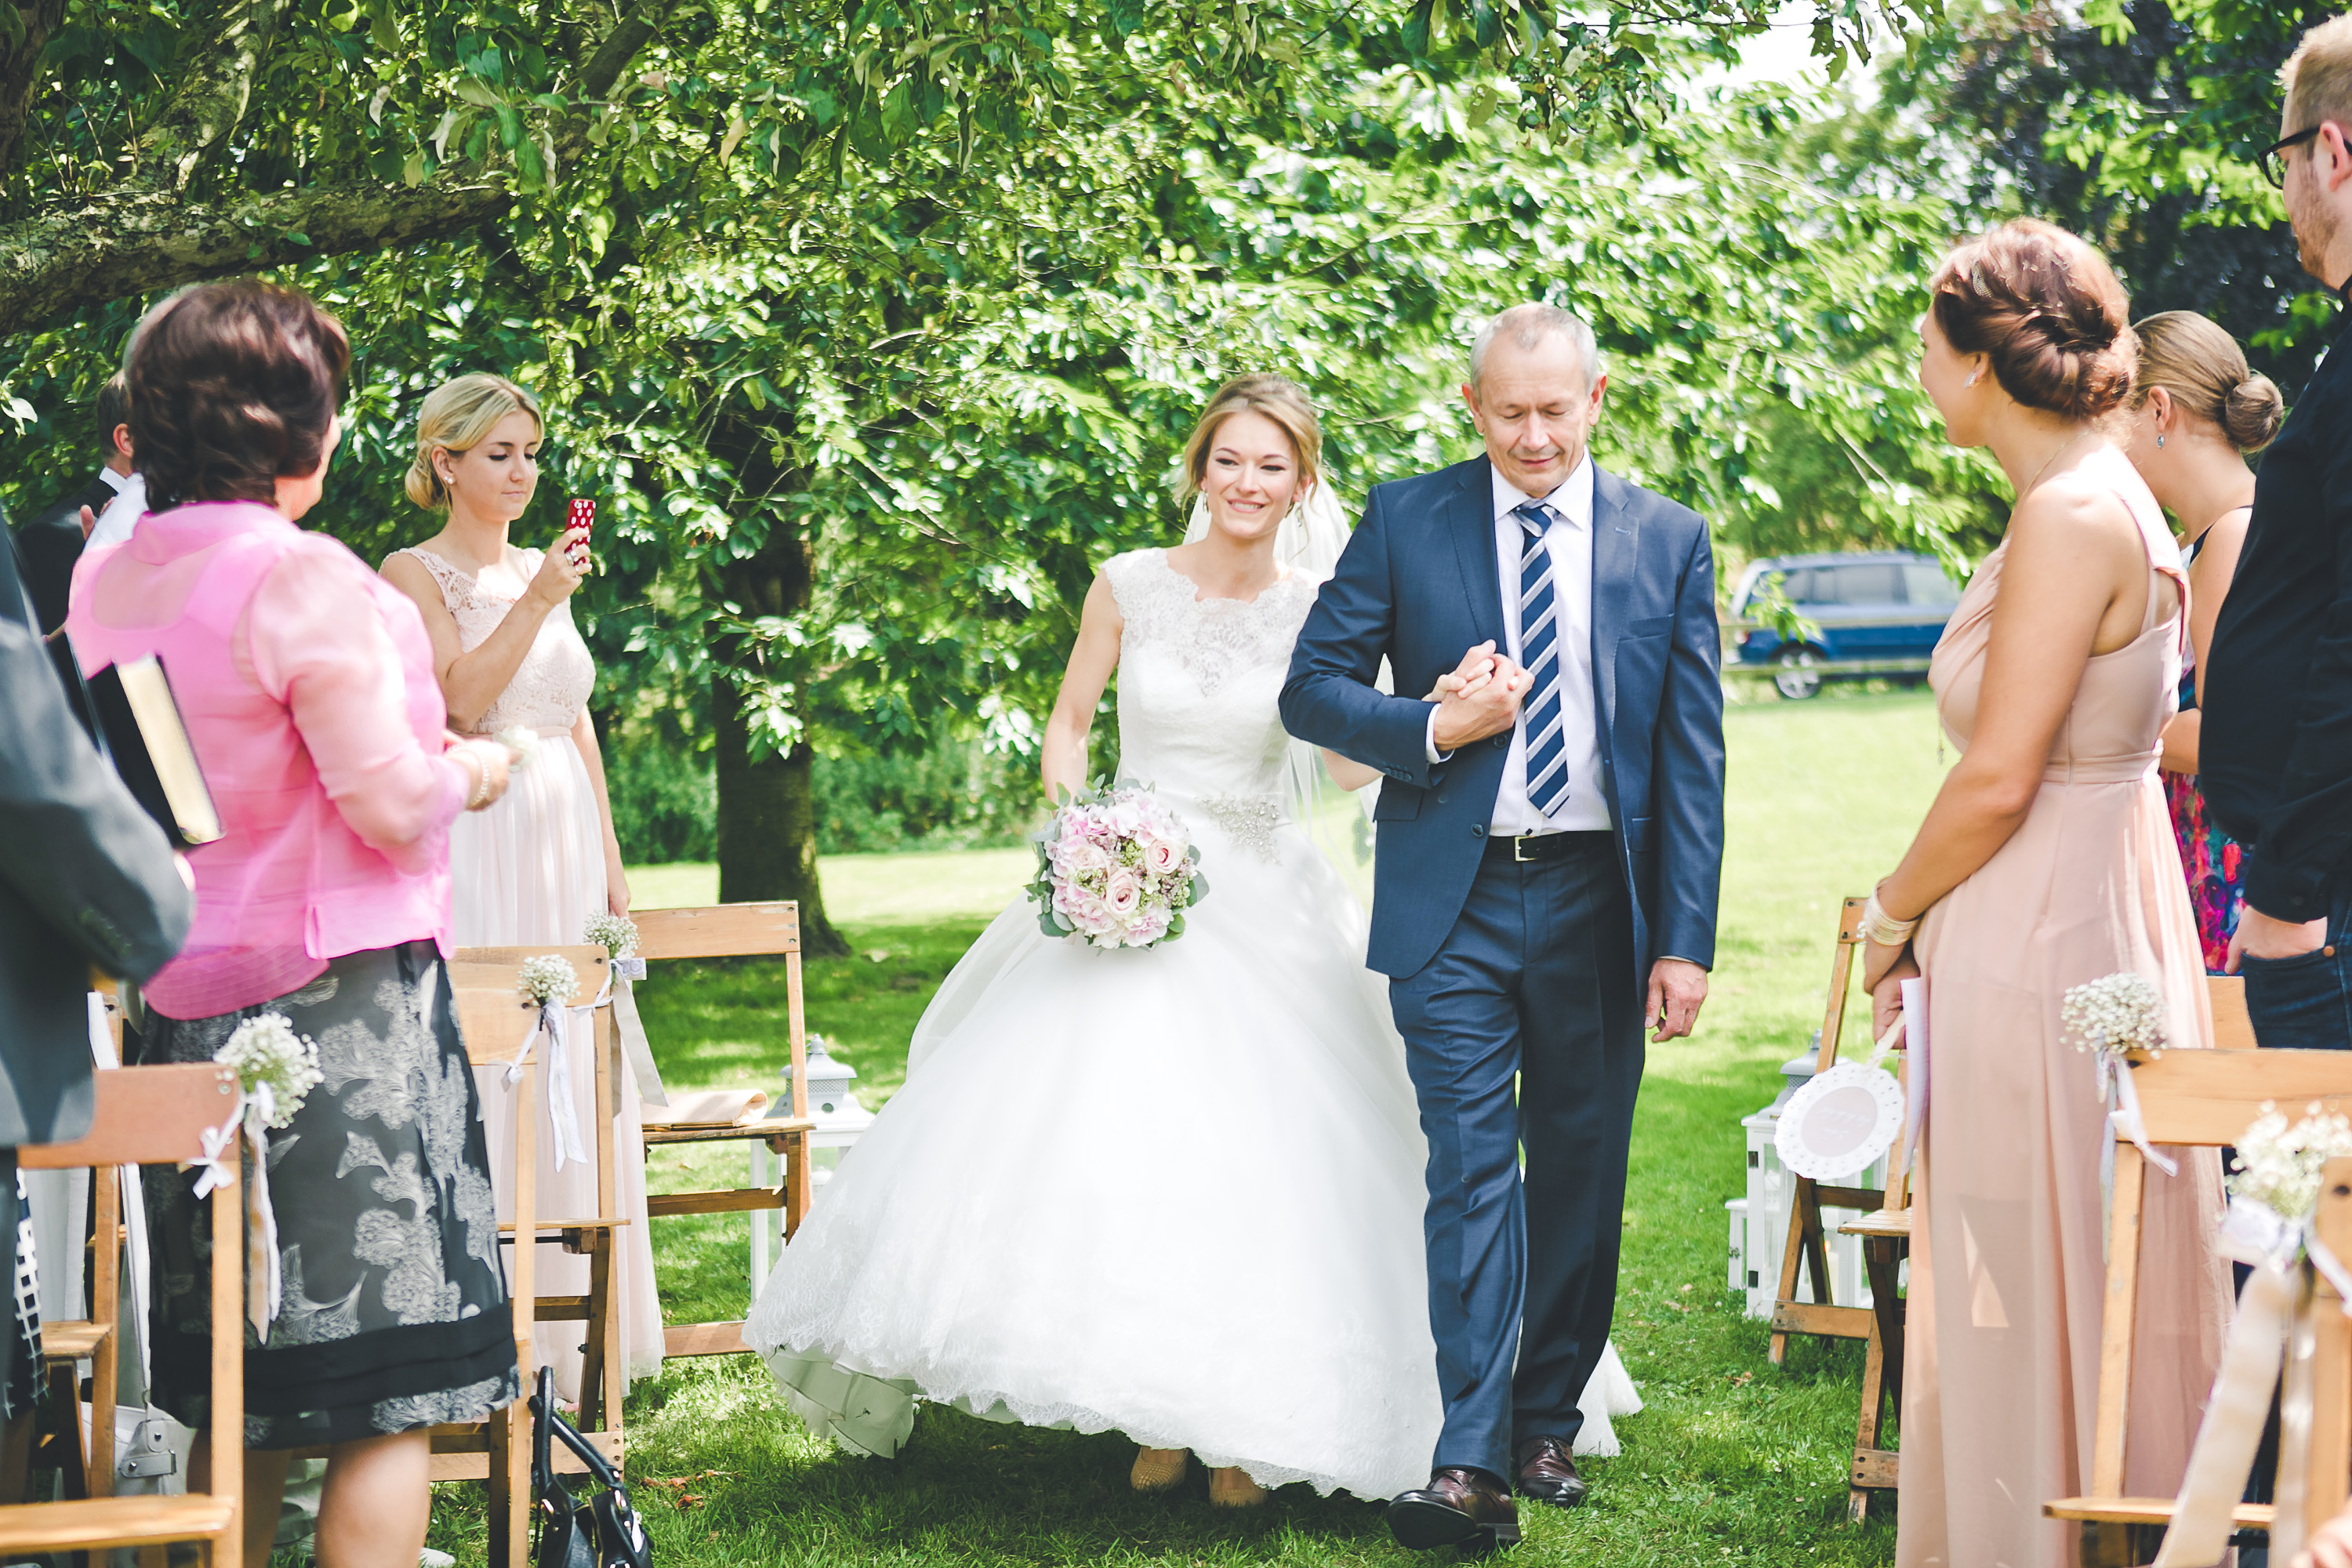 Lilly Andres Hochzeit